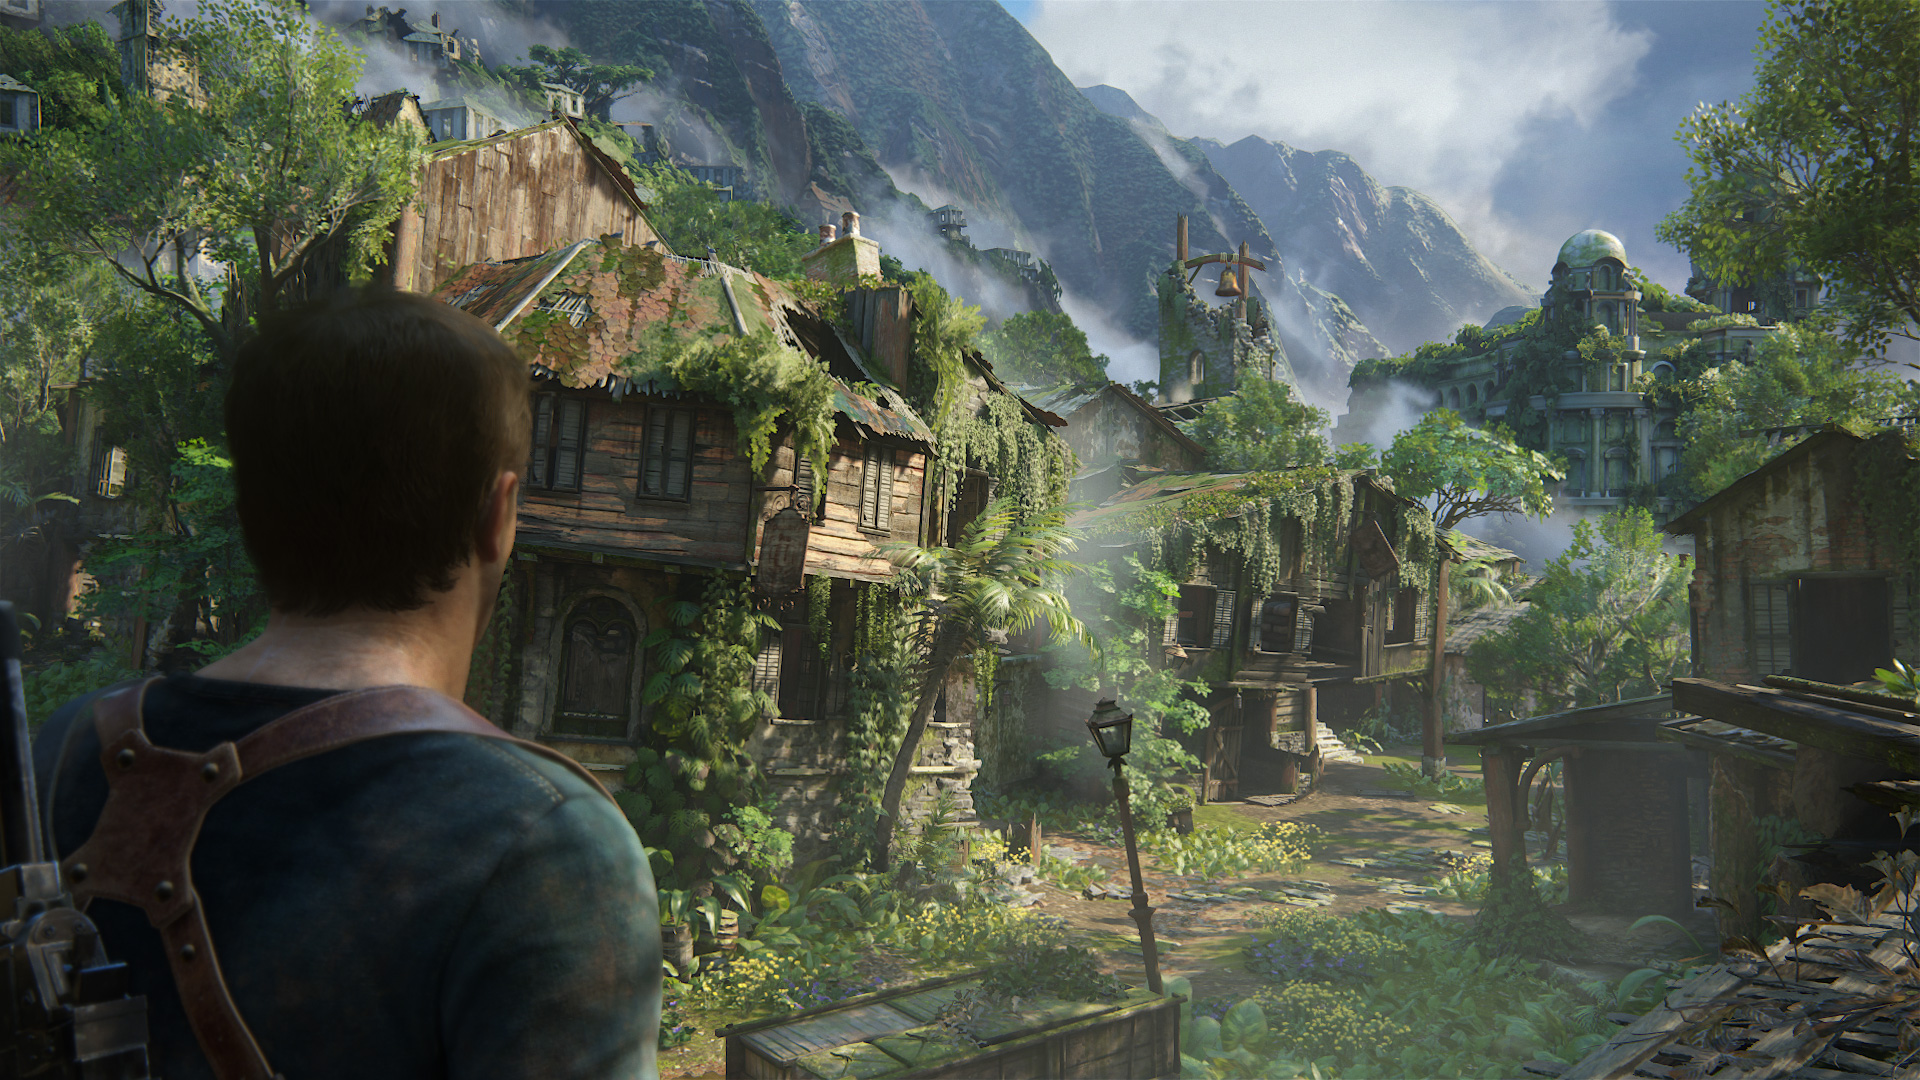 Uncharted-4-Libertalia-View.jpg